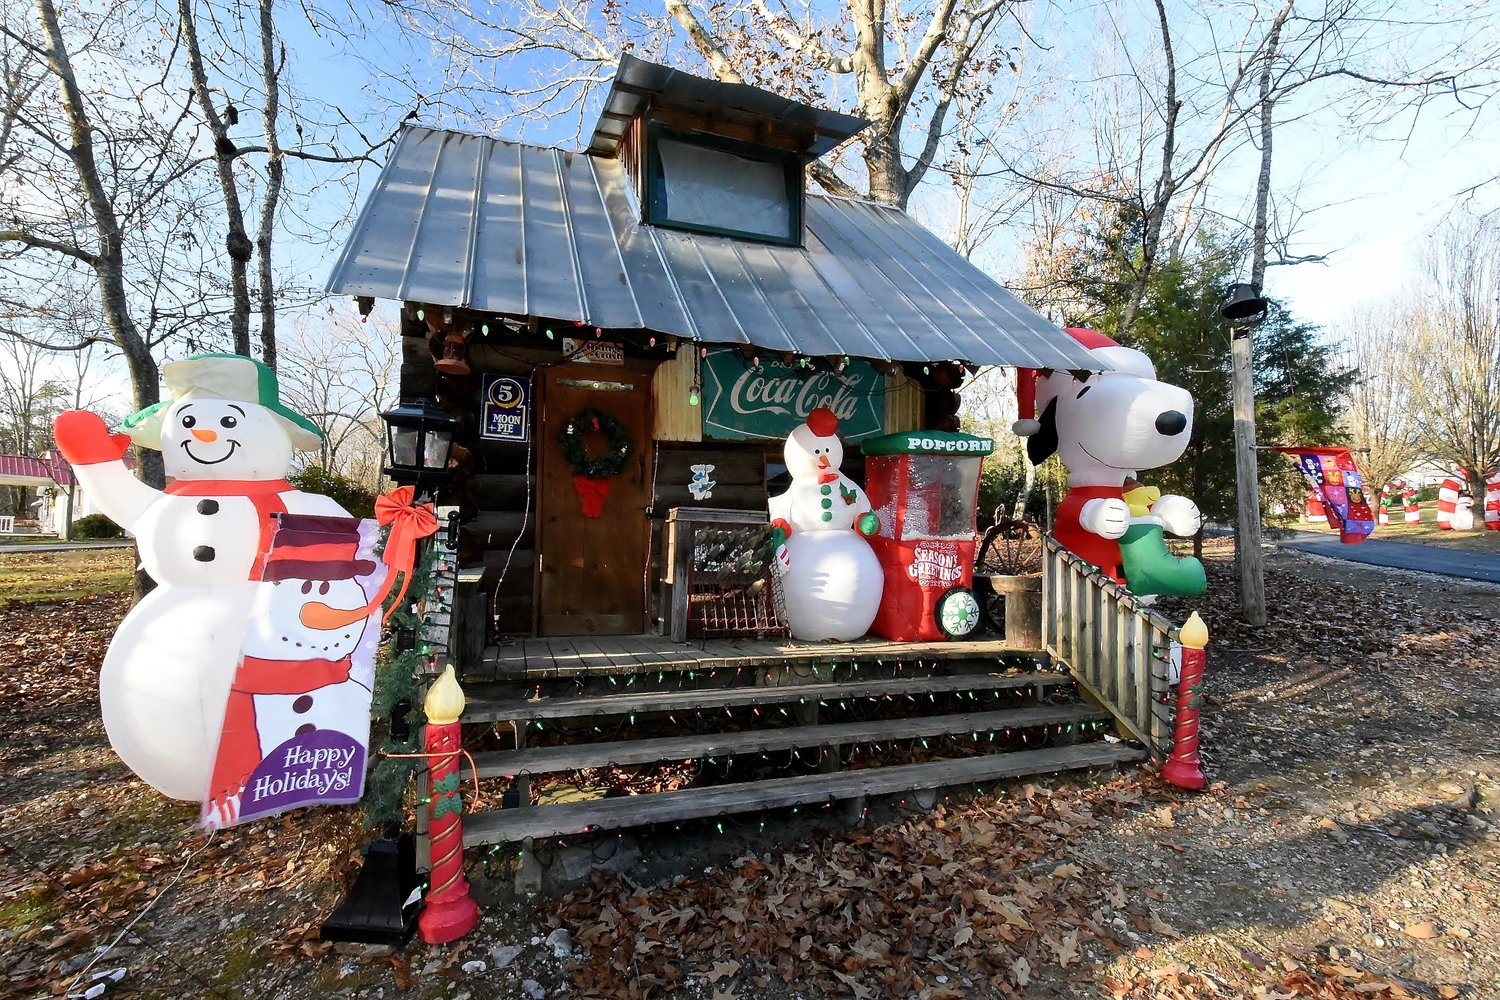 A general store with a window featuring a Christmas video is surrounded by inflatables and lights of different colors and sizes.